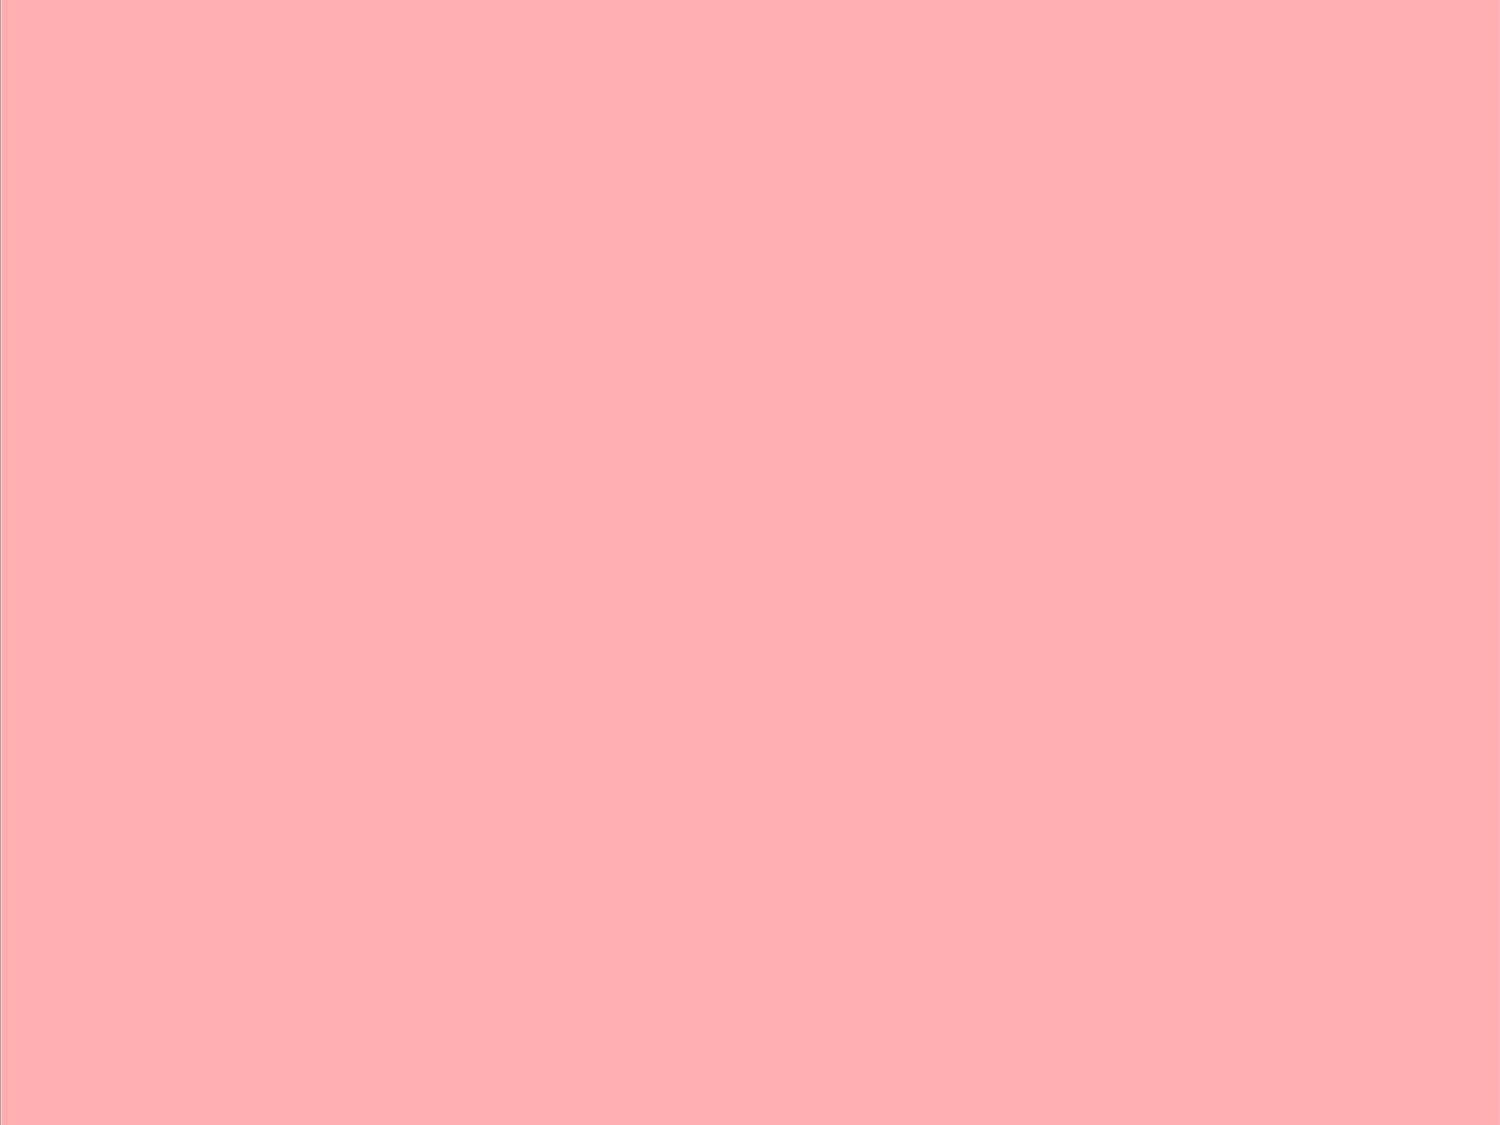 Home light pink background 1500x1125